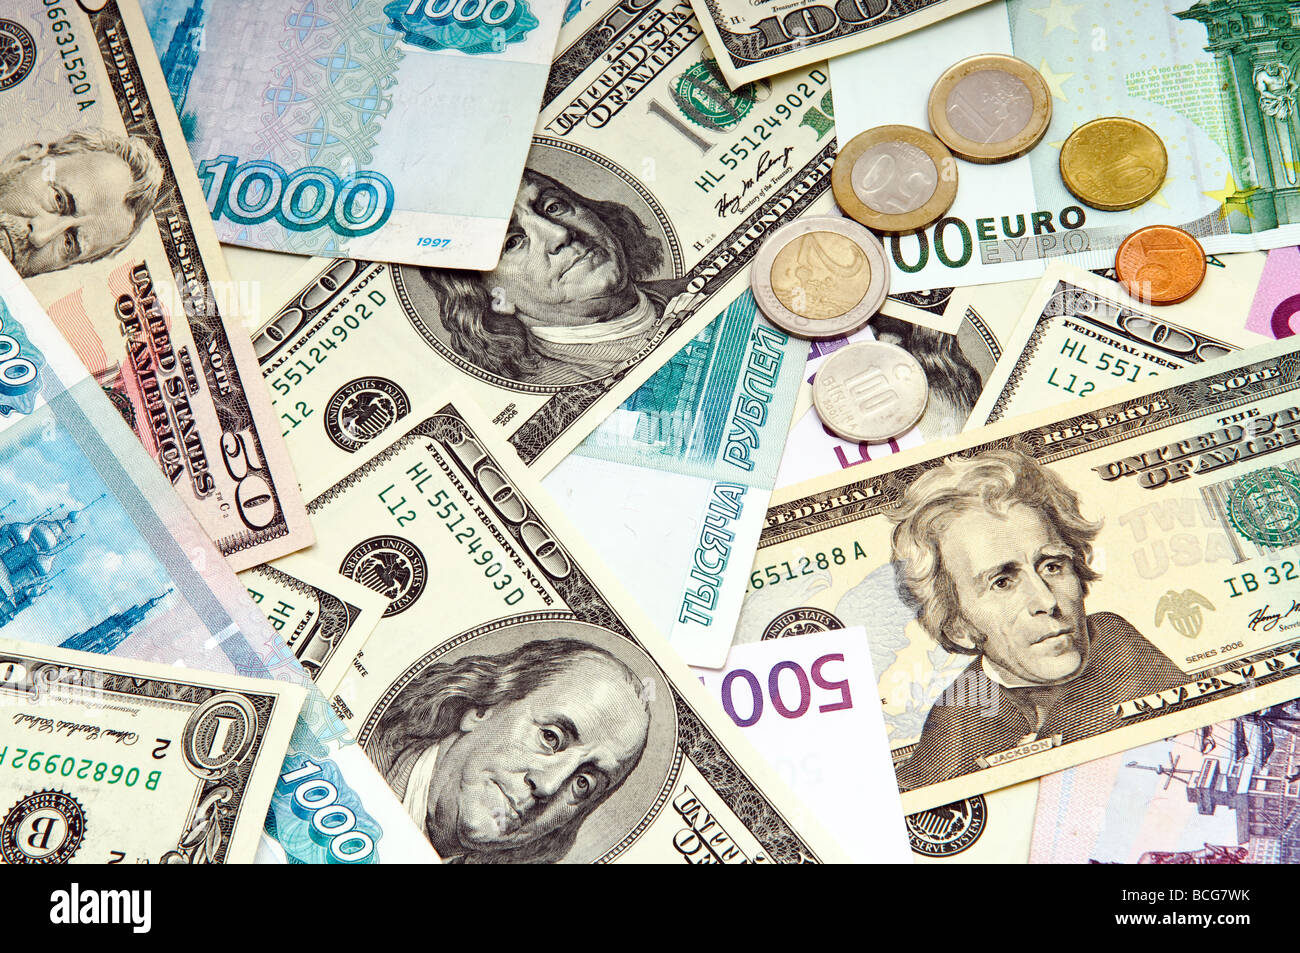 foreign currency background - Stock Image